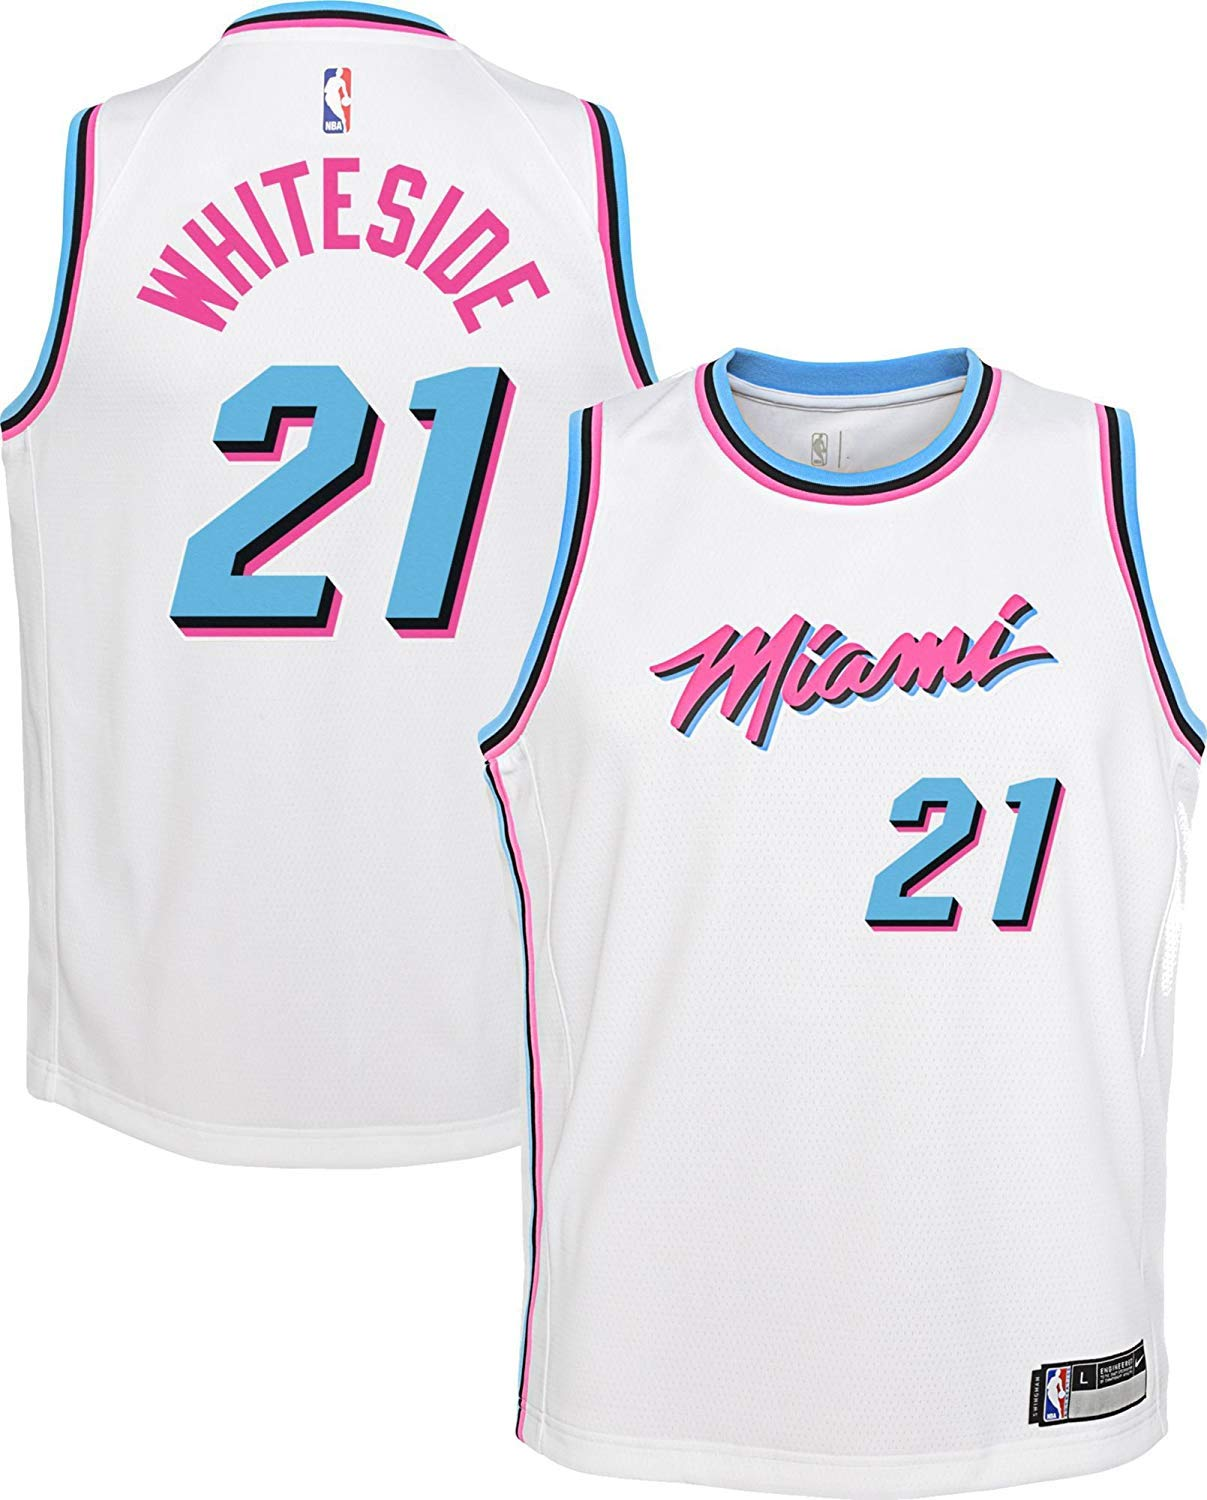 low priced 74905 9ed6f Amazon.com : Outerstuff Hassan Whiteside Miami Heat #21 ...